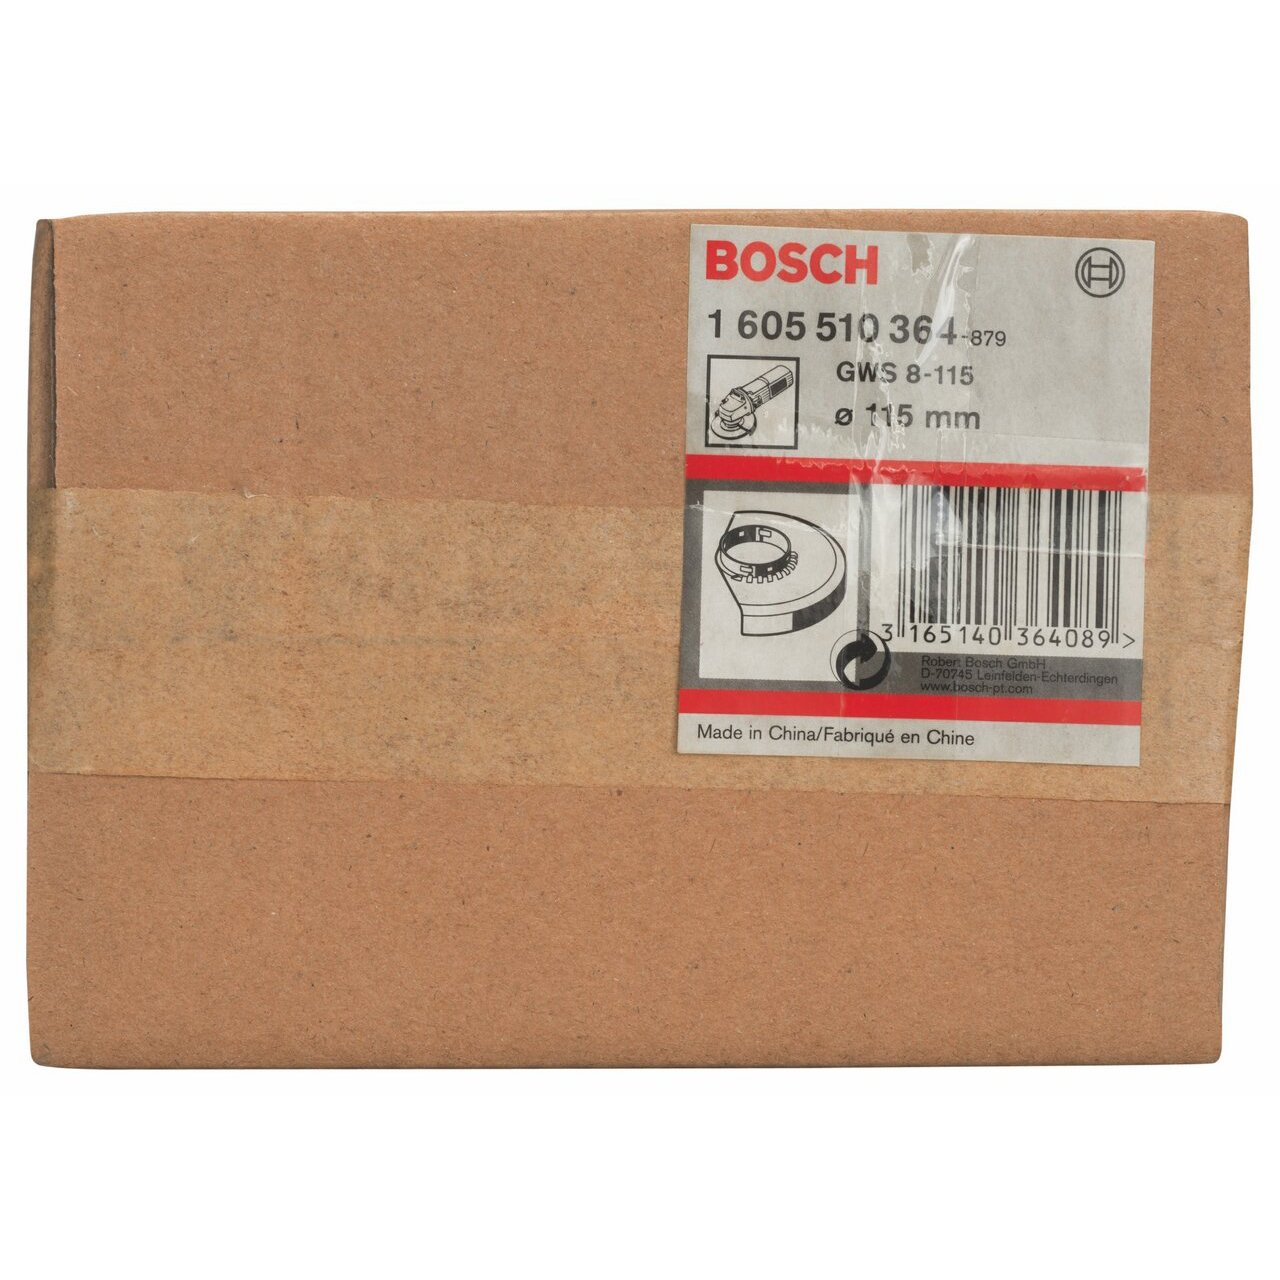 Bosch 1605510364 Protective Guards without Cover for Grinding